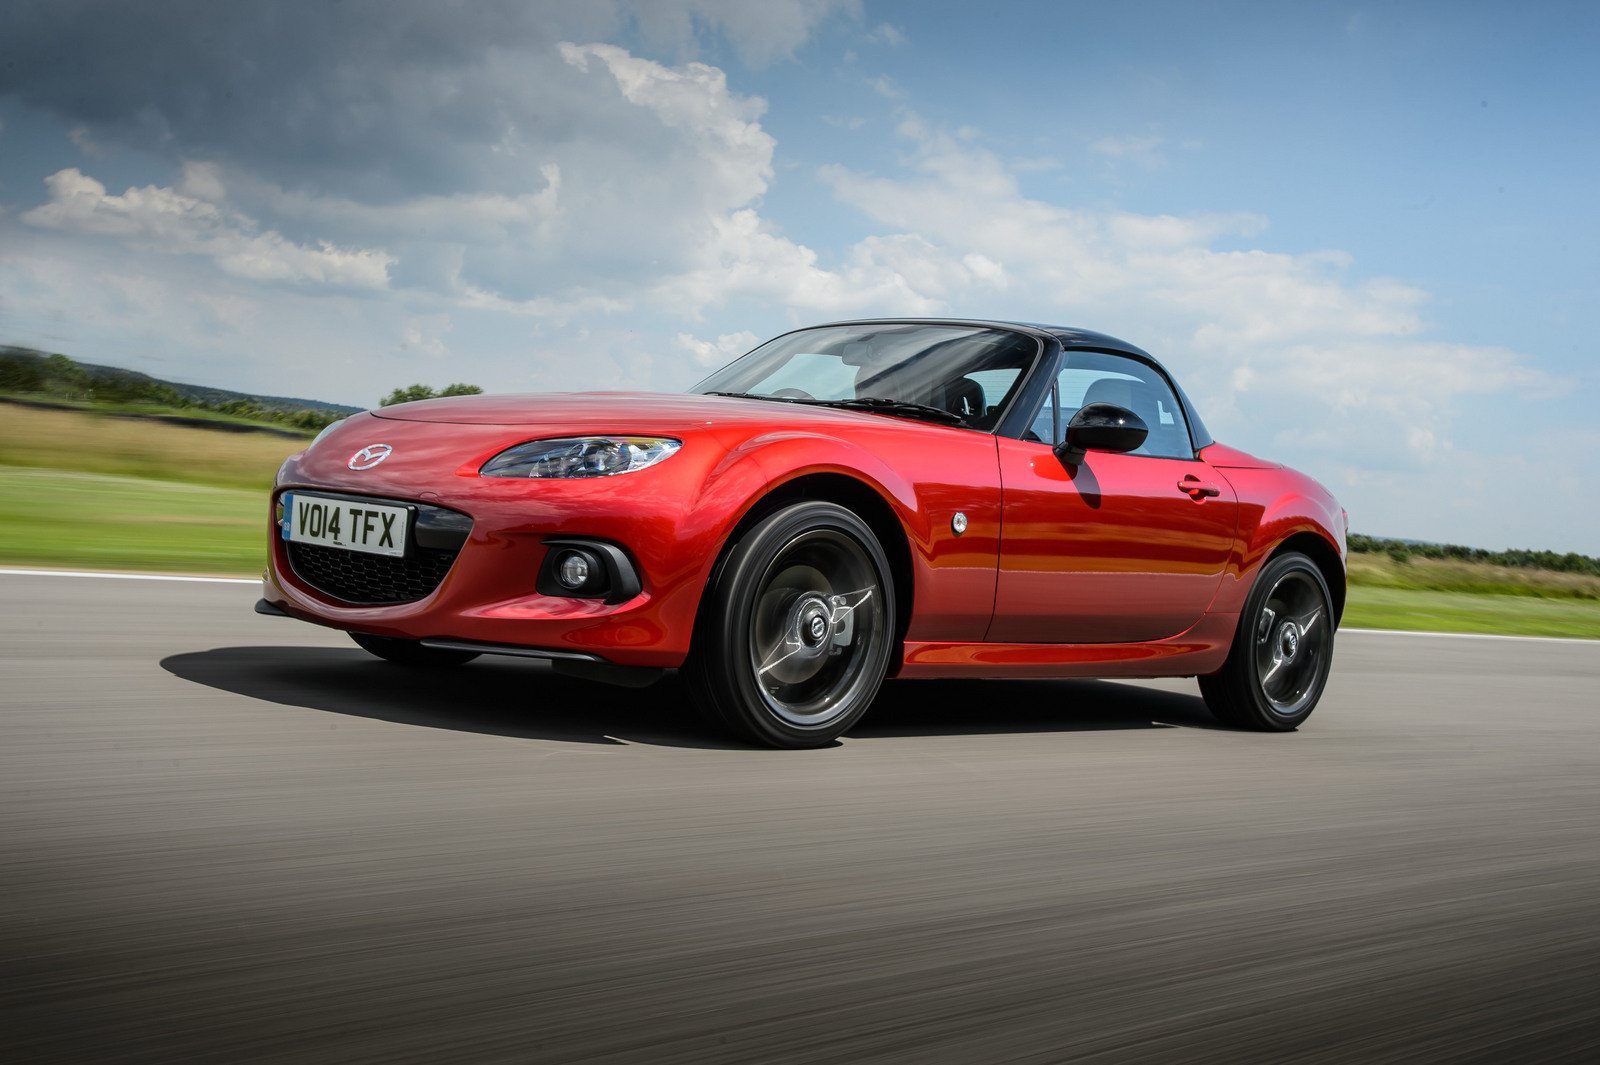 2015 mazda mx 5 miata 25th anniversary edition review top speed. Black Bedroom Furniture Sets. Home Design Ideas